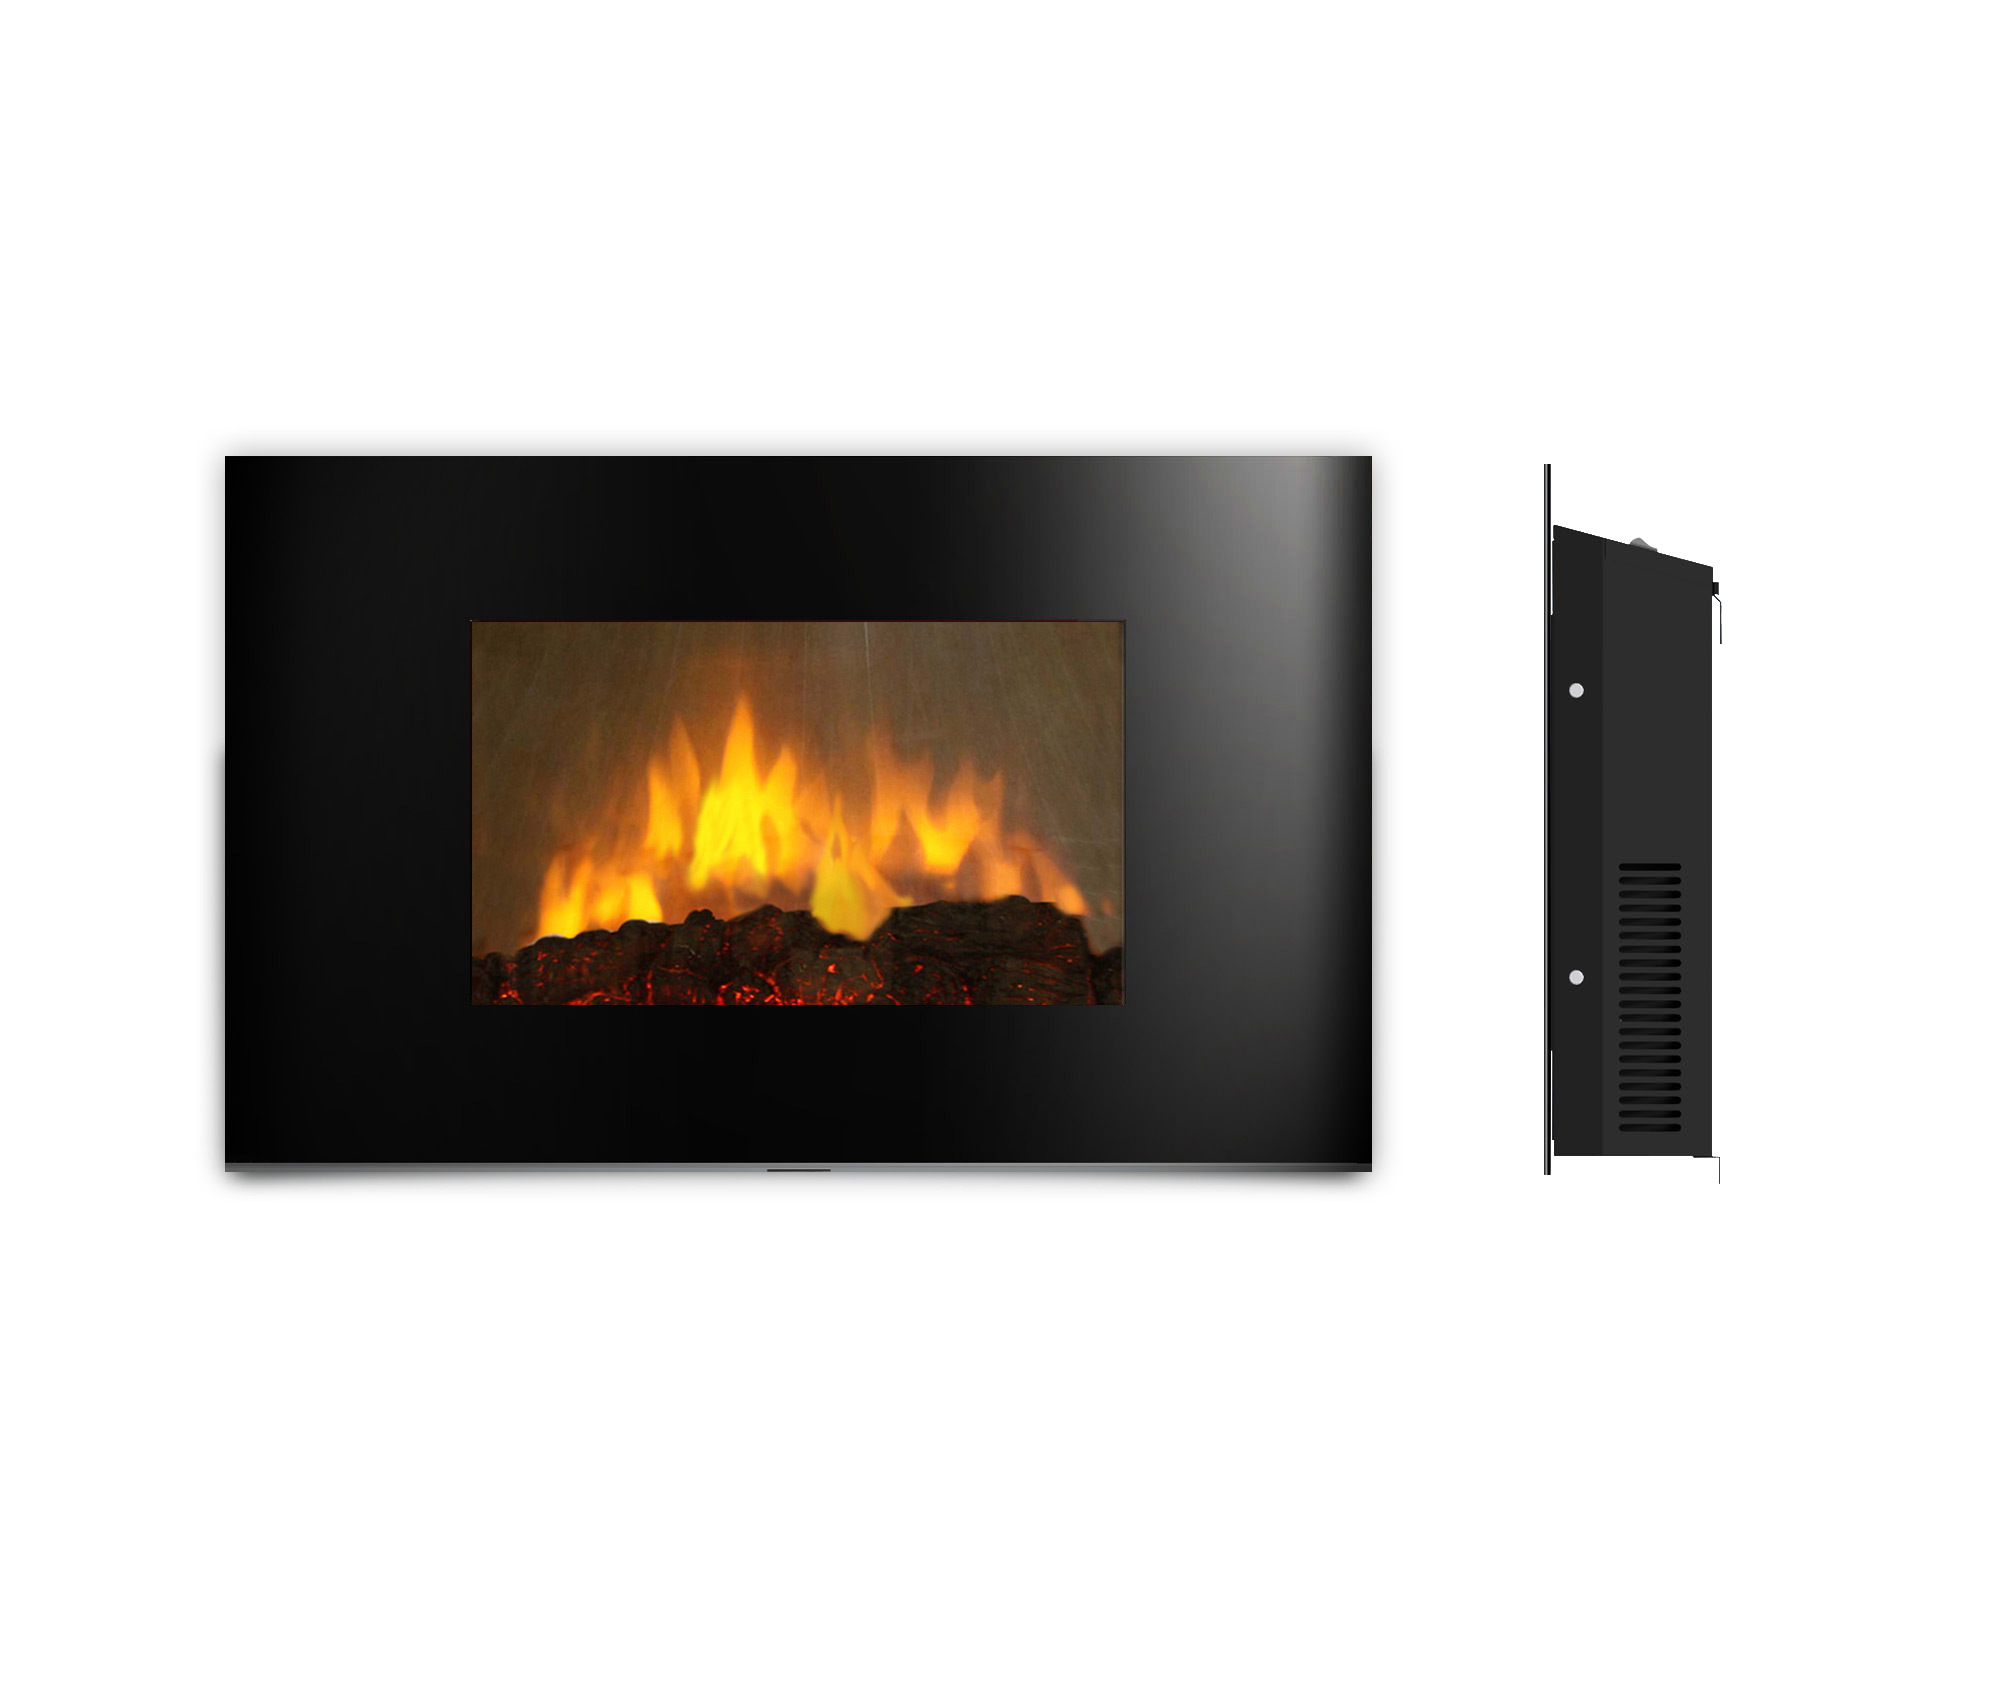 ambionair flame led wall mounted fireplace ef 1510 bgl